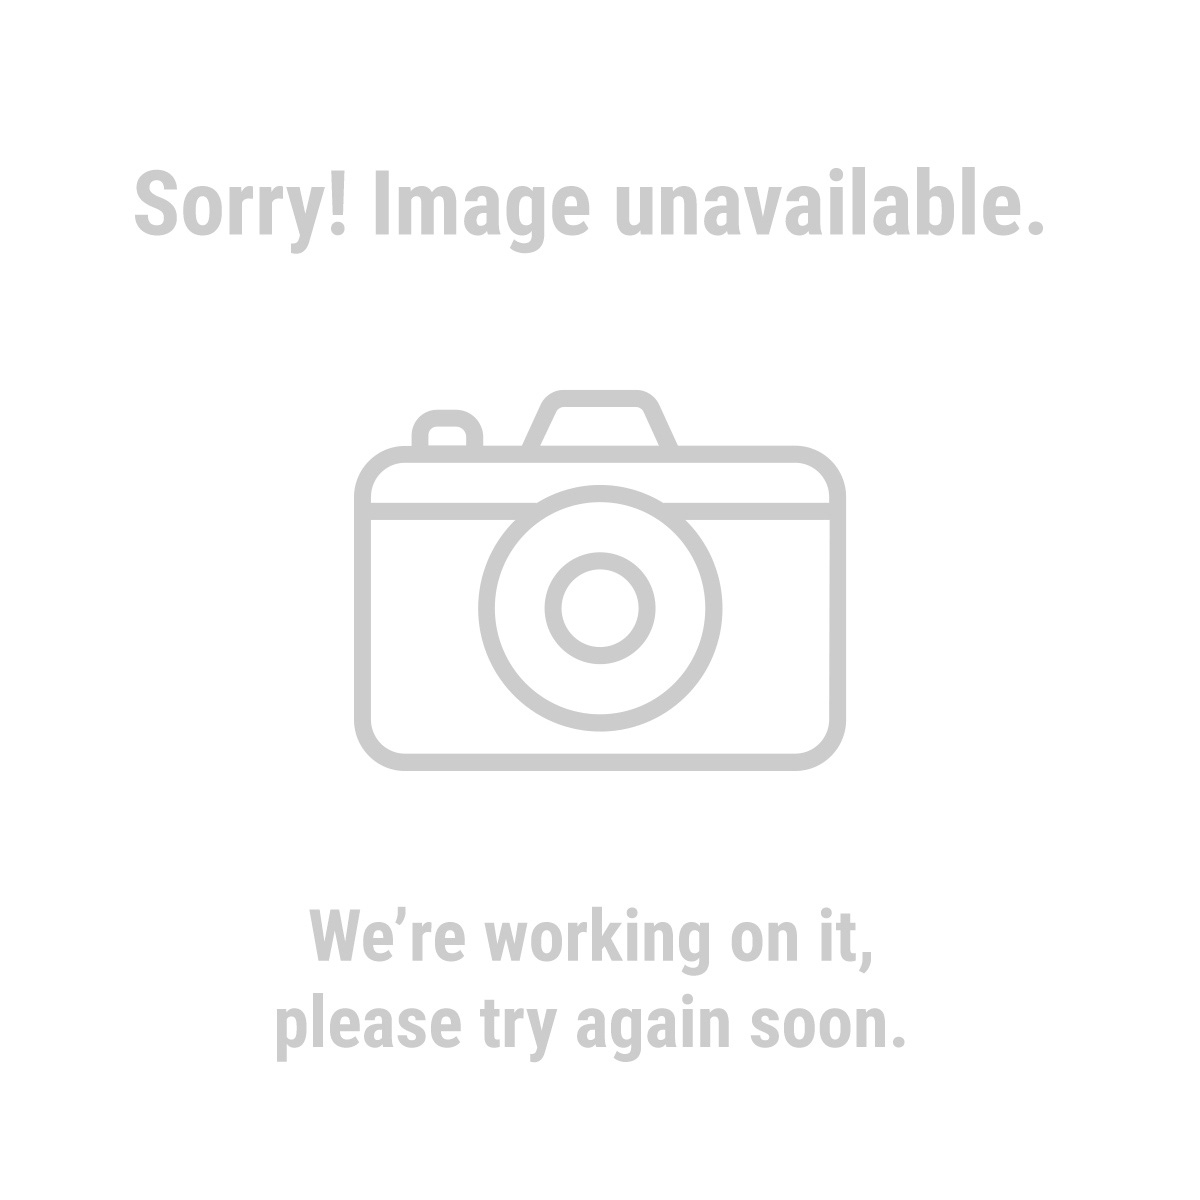 Storehouse 67692 60 Piece AGC Glass Automotive Fuse Set